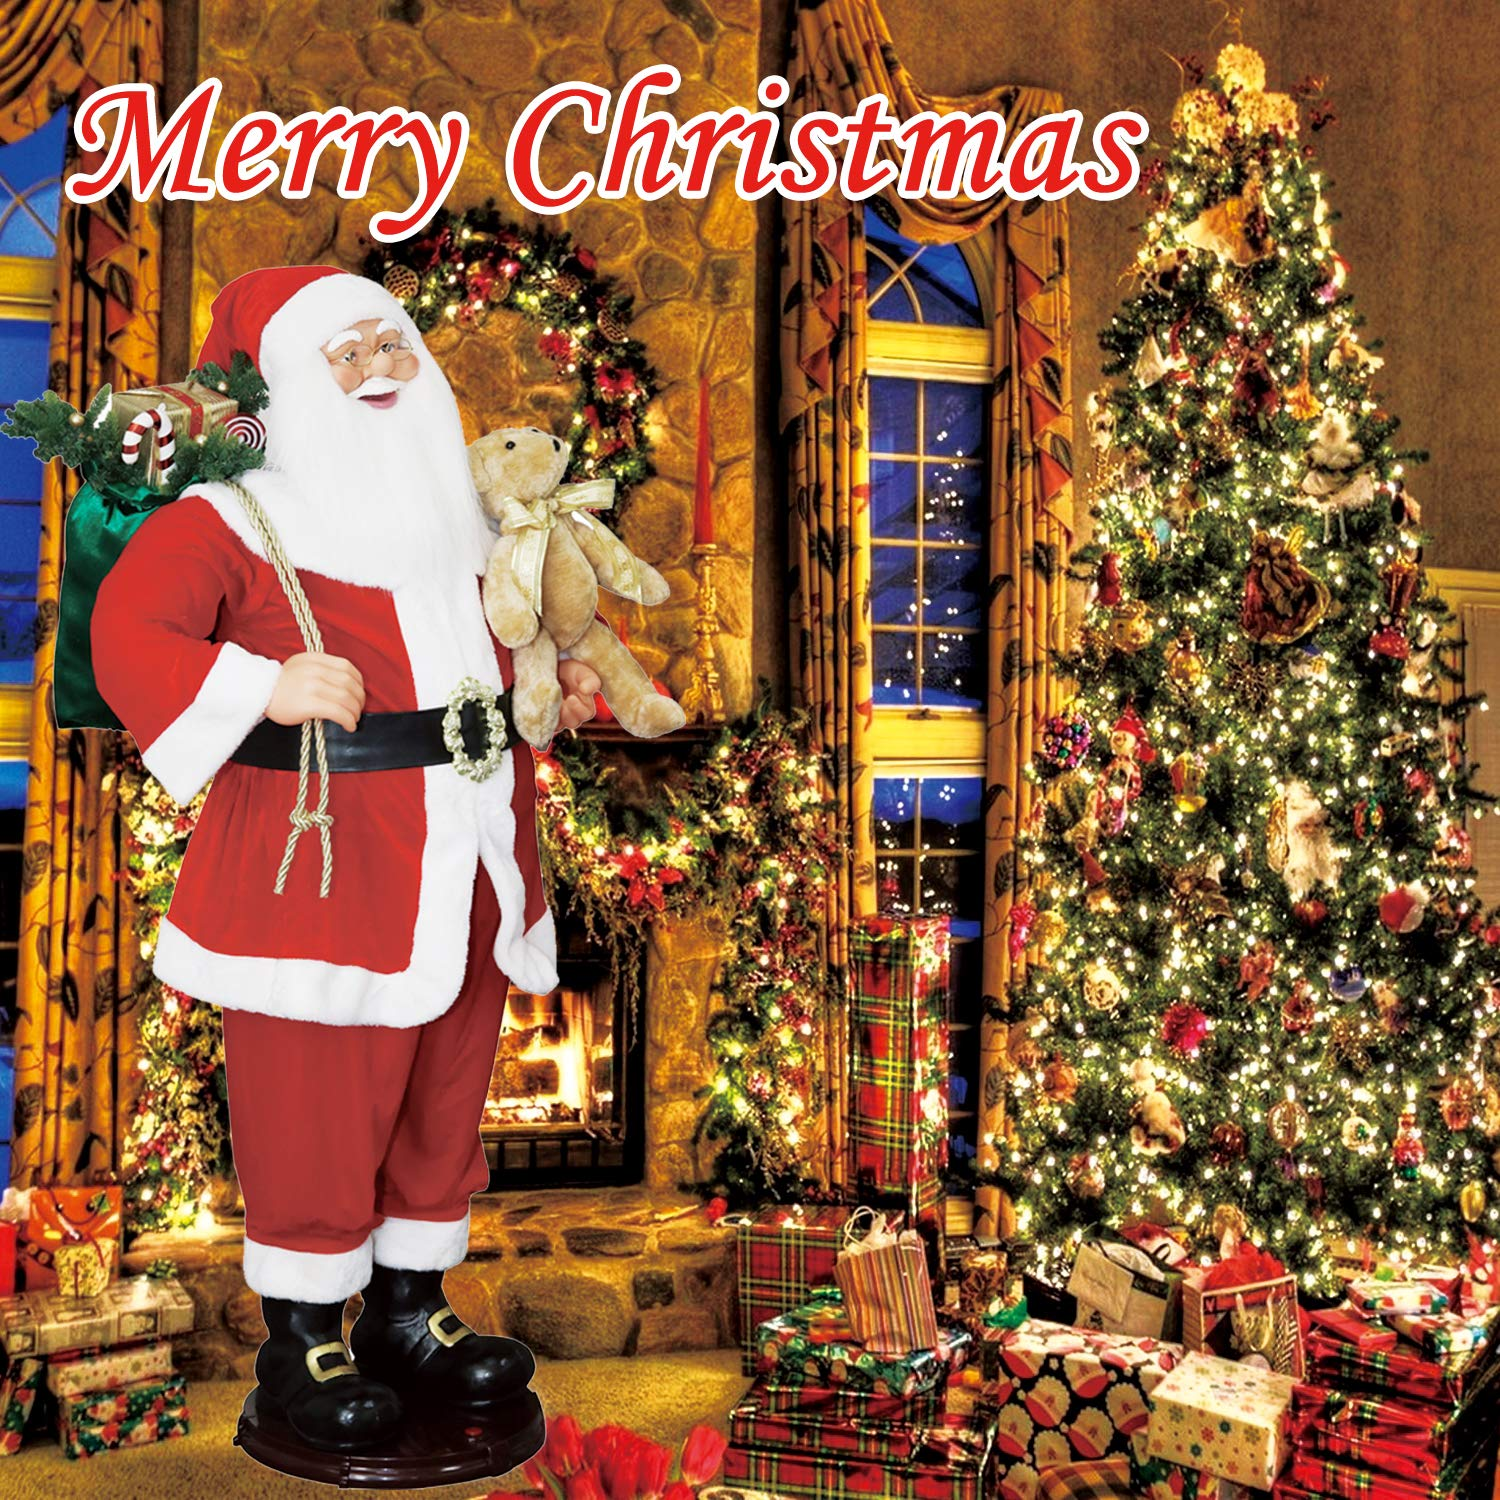 CHENGMON 59 Inch Christmas Life Size Animated Rock Singing and Dancing Santa Claus Collapsible Decoration Collection Musical Sensor Reaction Figure Traditonal Red Standing Indoor Gift Bag Bear